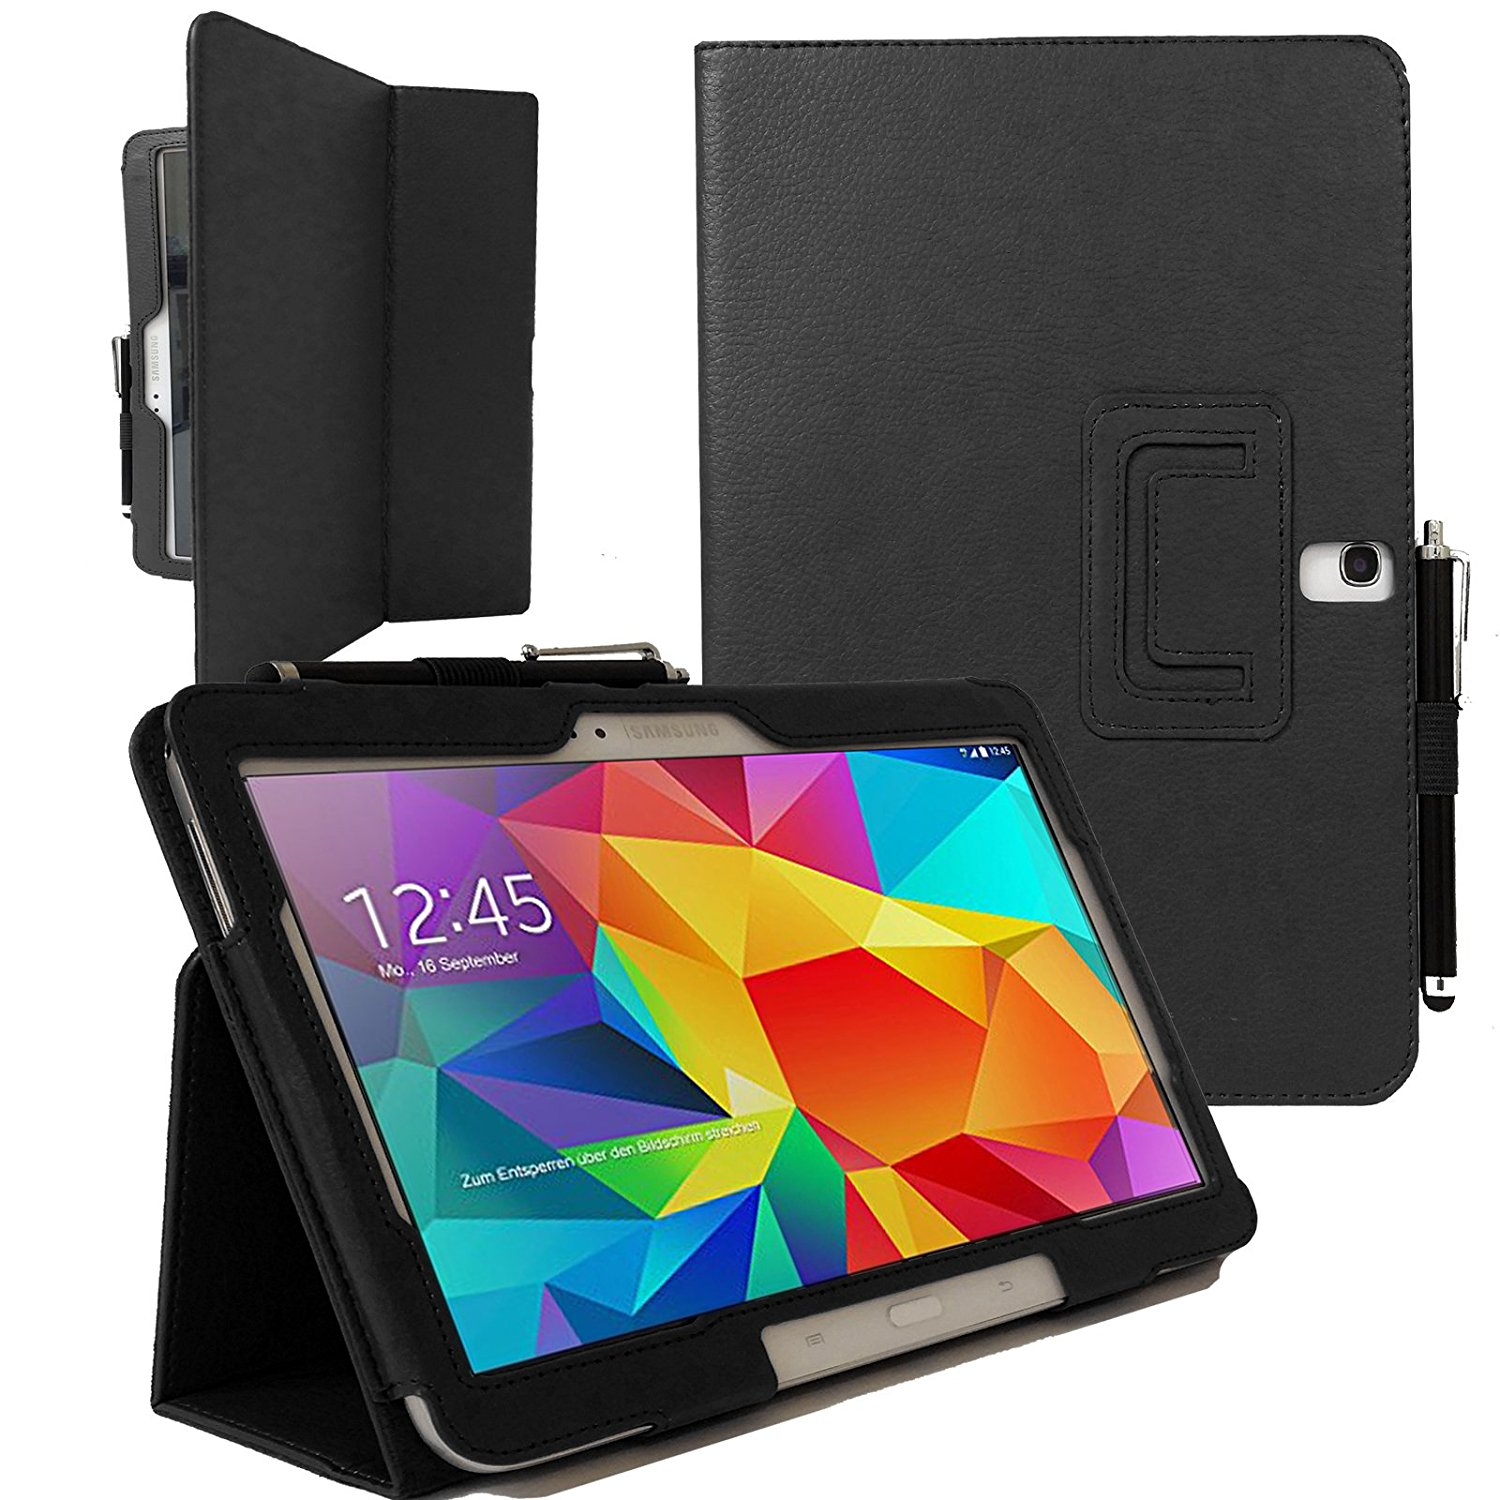 Case for Samsung Galaxy Tab 4 10.1 T530 T535 PU Leather Folio Stand Case Cover For Samsung Galaxy Tab 4 10.1 Funda +Stylus Pen ultra thin folio pu leather stand smart case for cover samsung galaxy tab 4 10 1 t530w screen protector stylus pen free shipping